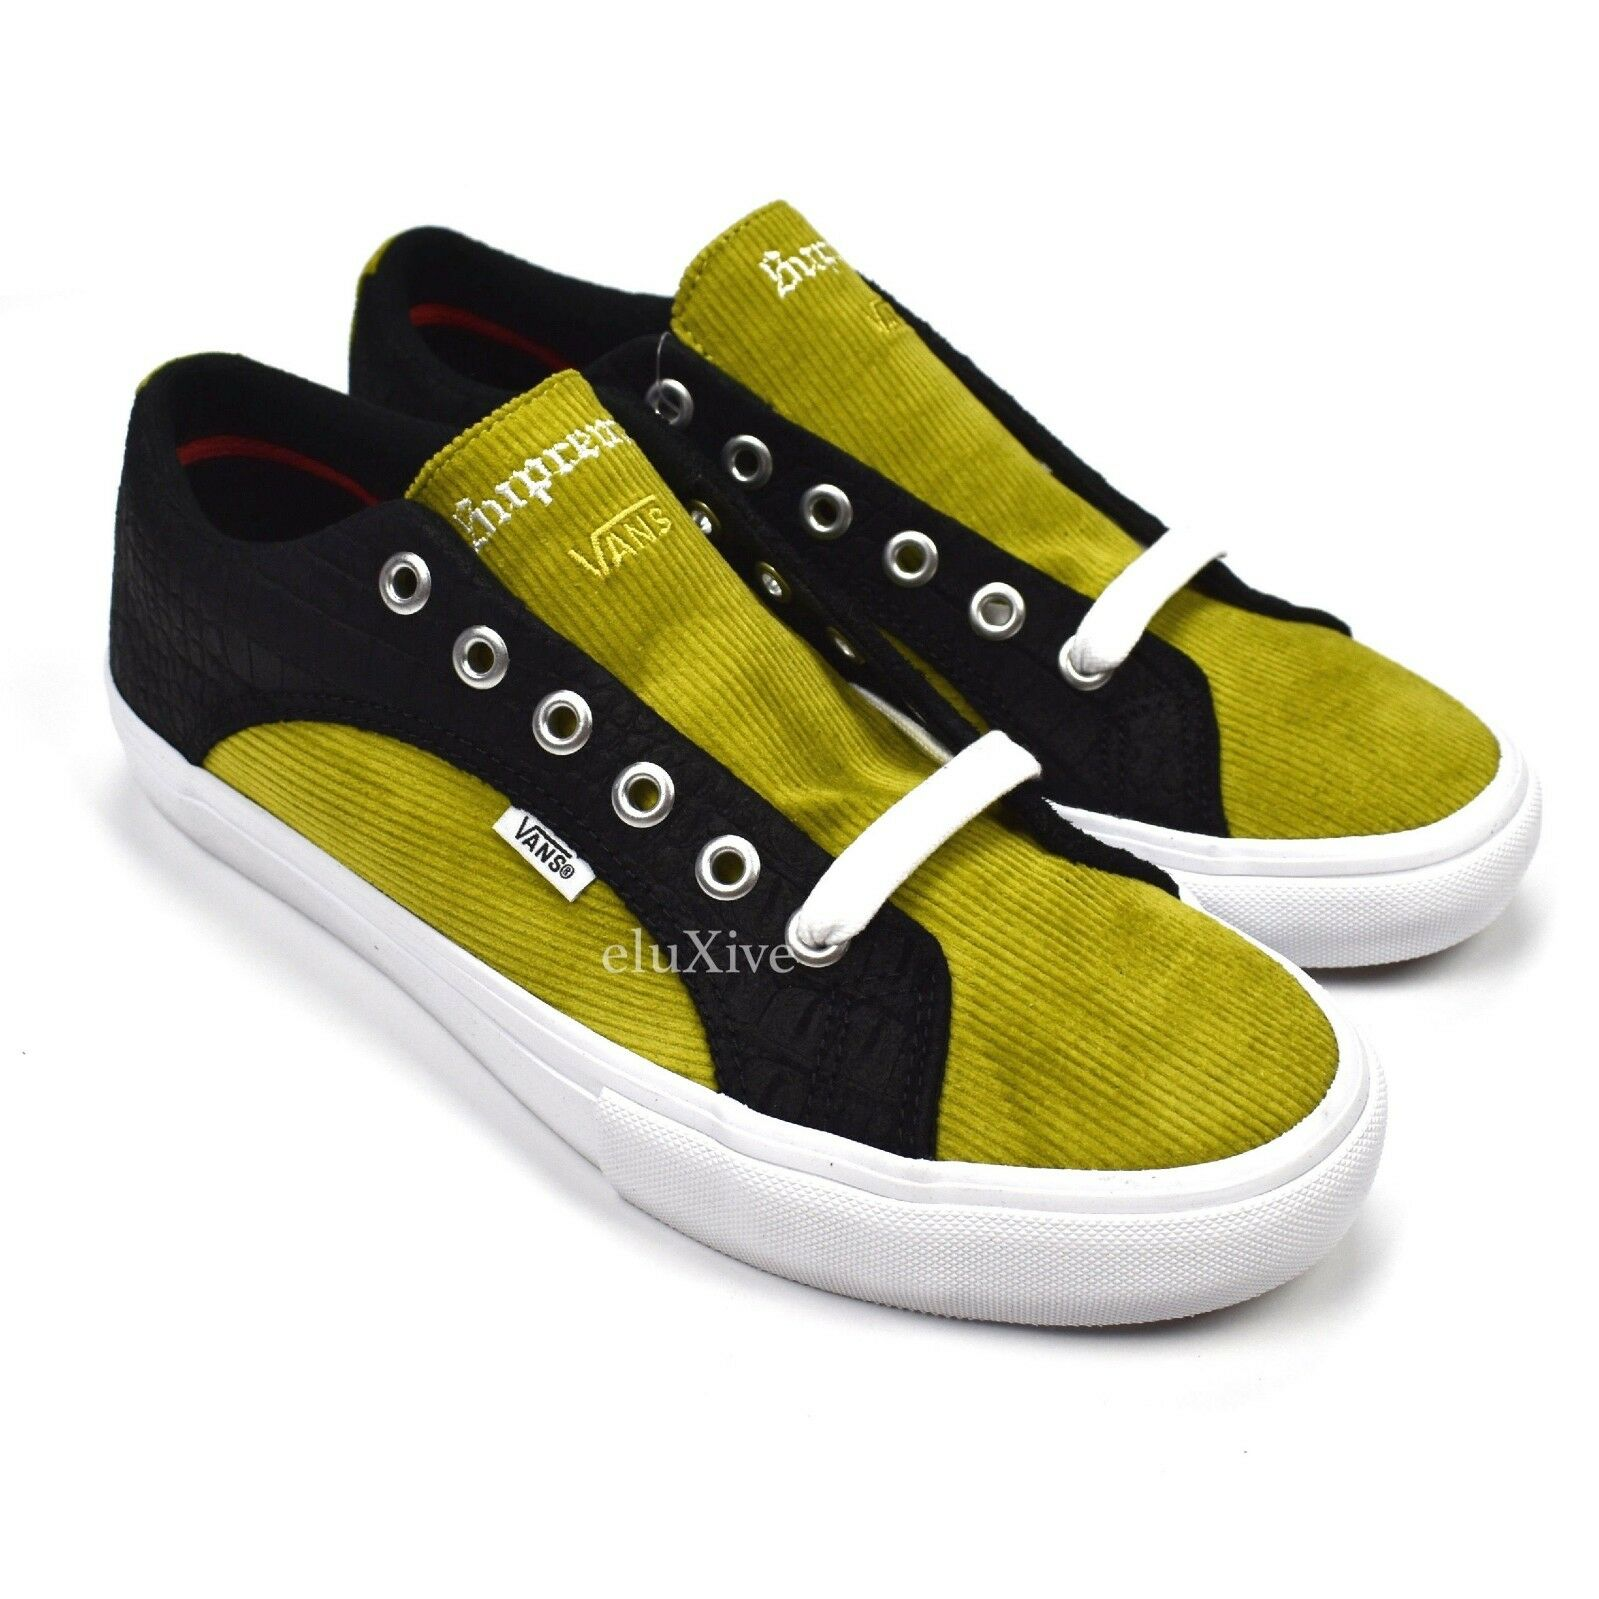 NWT Supreme x Vans Croc Suede Mustard Corduroy Lampin Pro Sneakers 9.5 AUTHENTIC